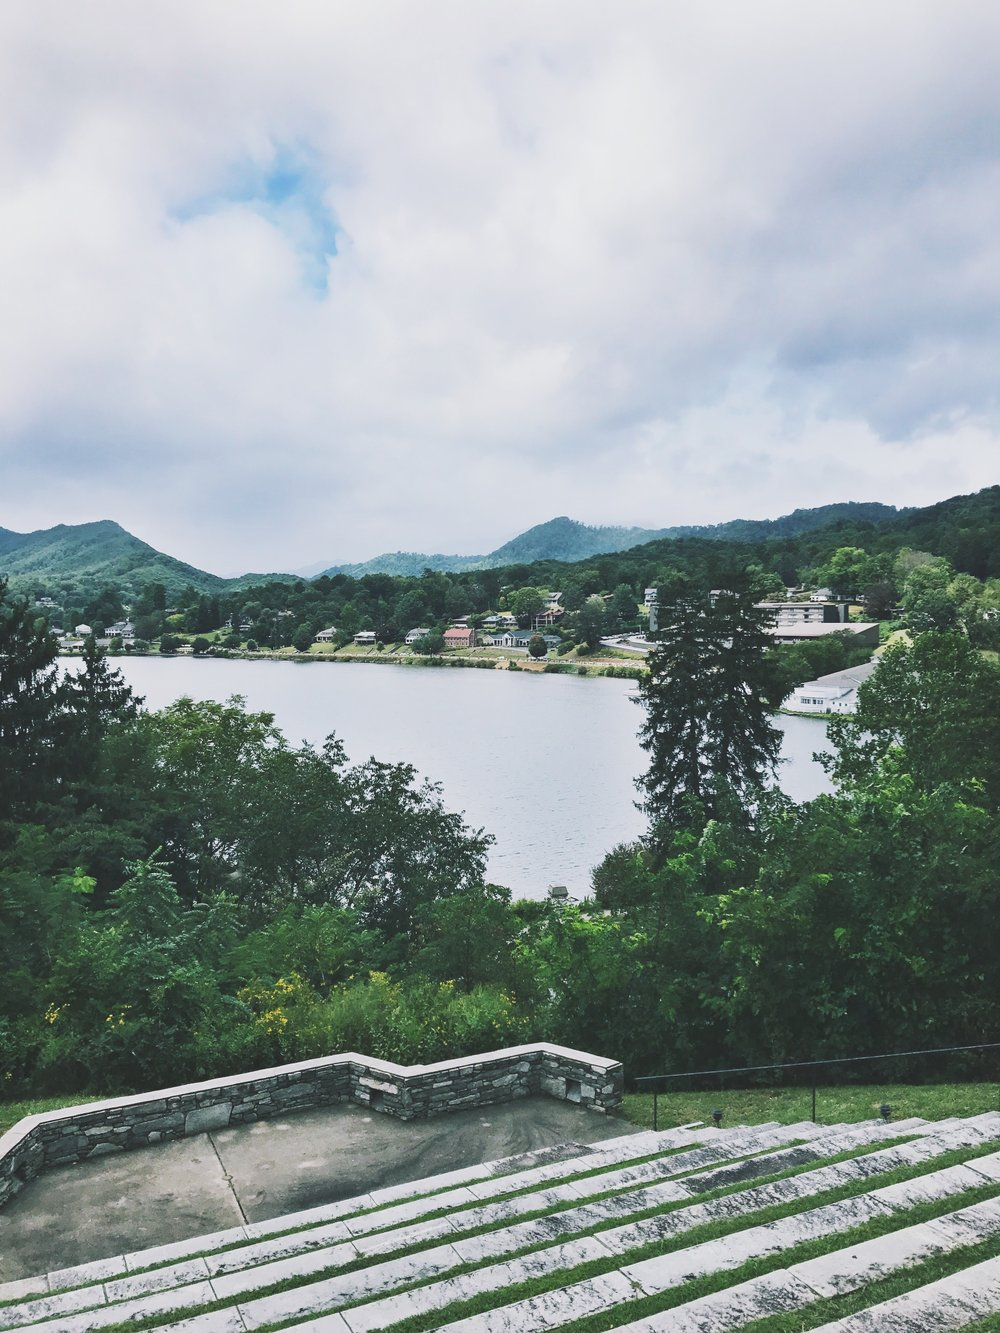 Lake Junaluska, where our marriage conference was